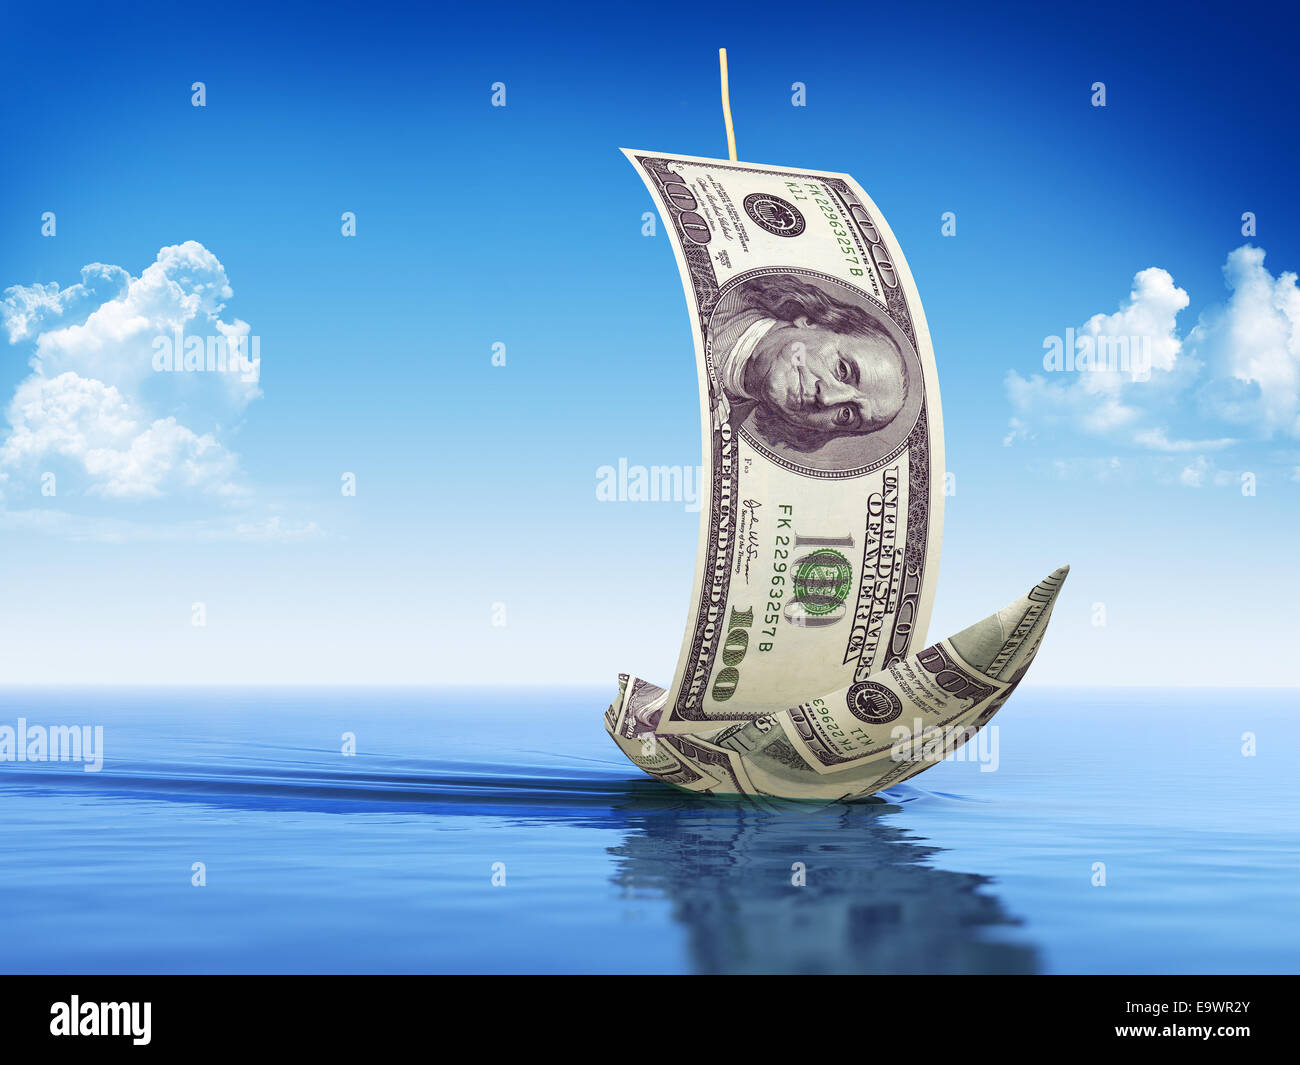 Sailboat made of Dollars - Stock Image